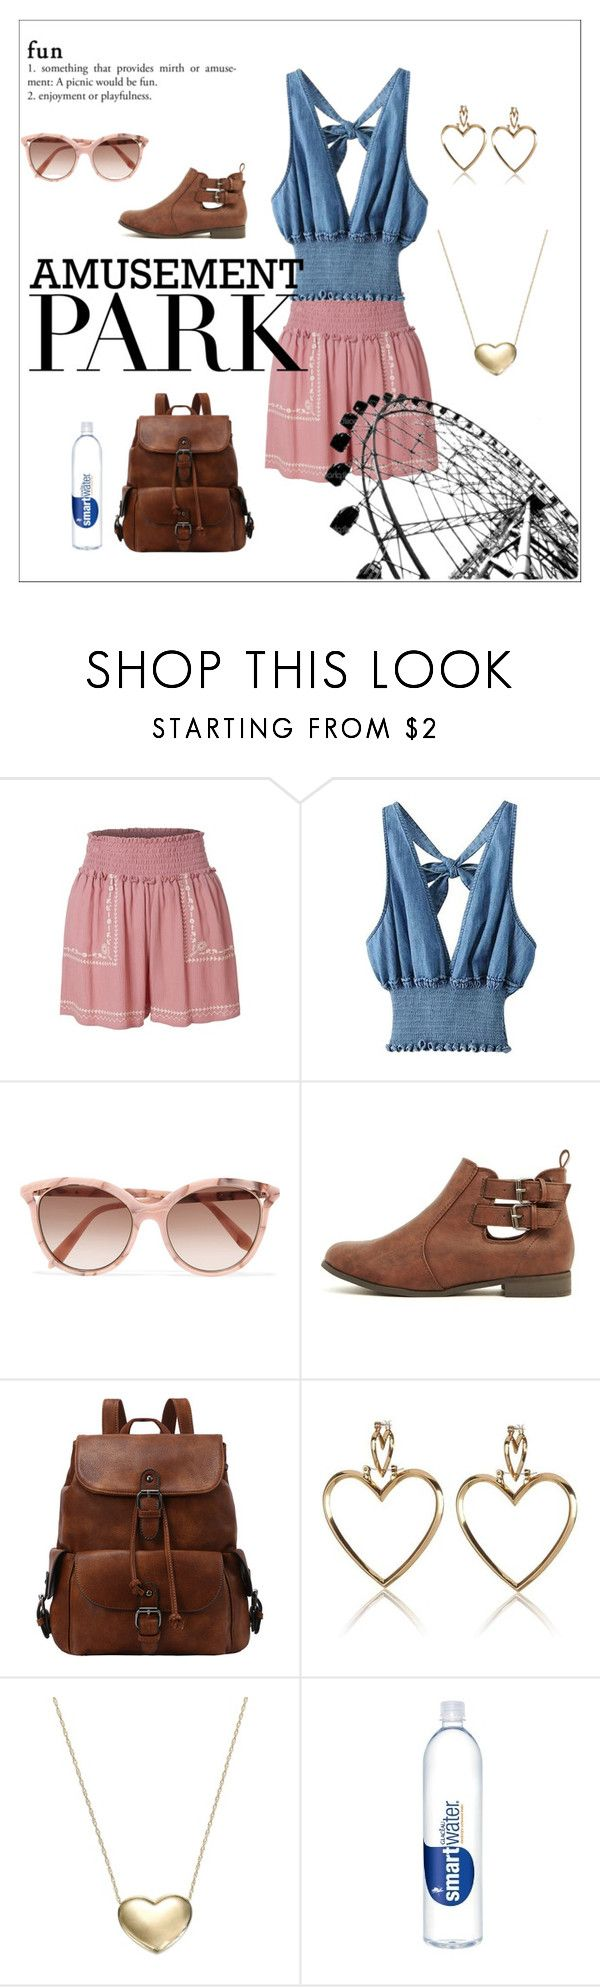 """Untitled #25"" by dreamscout ❤ liked on Polyvore featuring LE3NO, Victoria Beckham, Signature Gold, amusementpark and 60secondstyle"